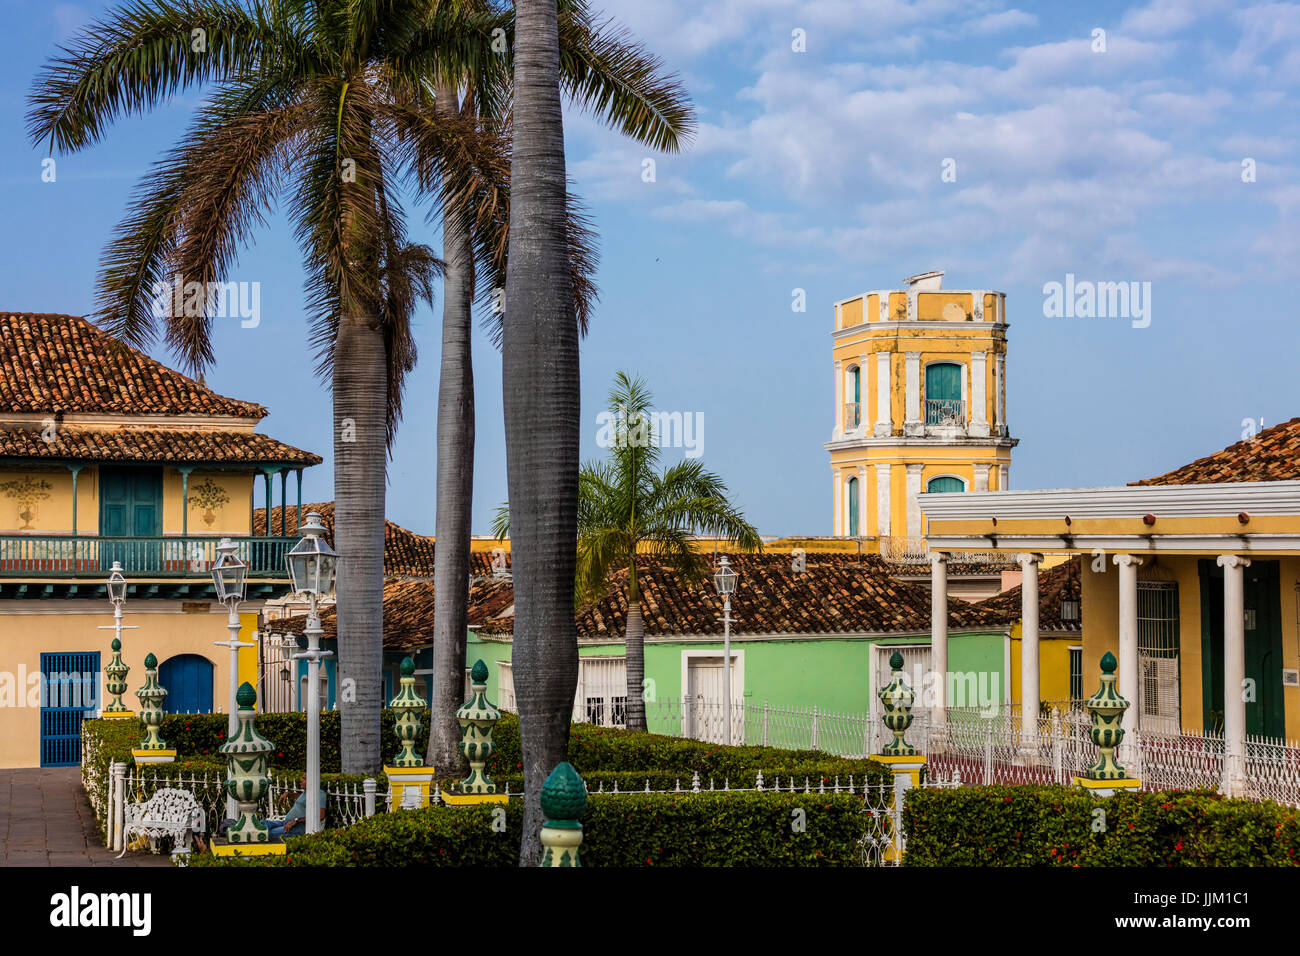 The PLAZA MAYOR is surrounded by historical buildings in the heart of the town - TRINIDAD, CUBA - Stock Image